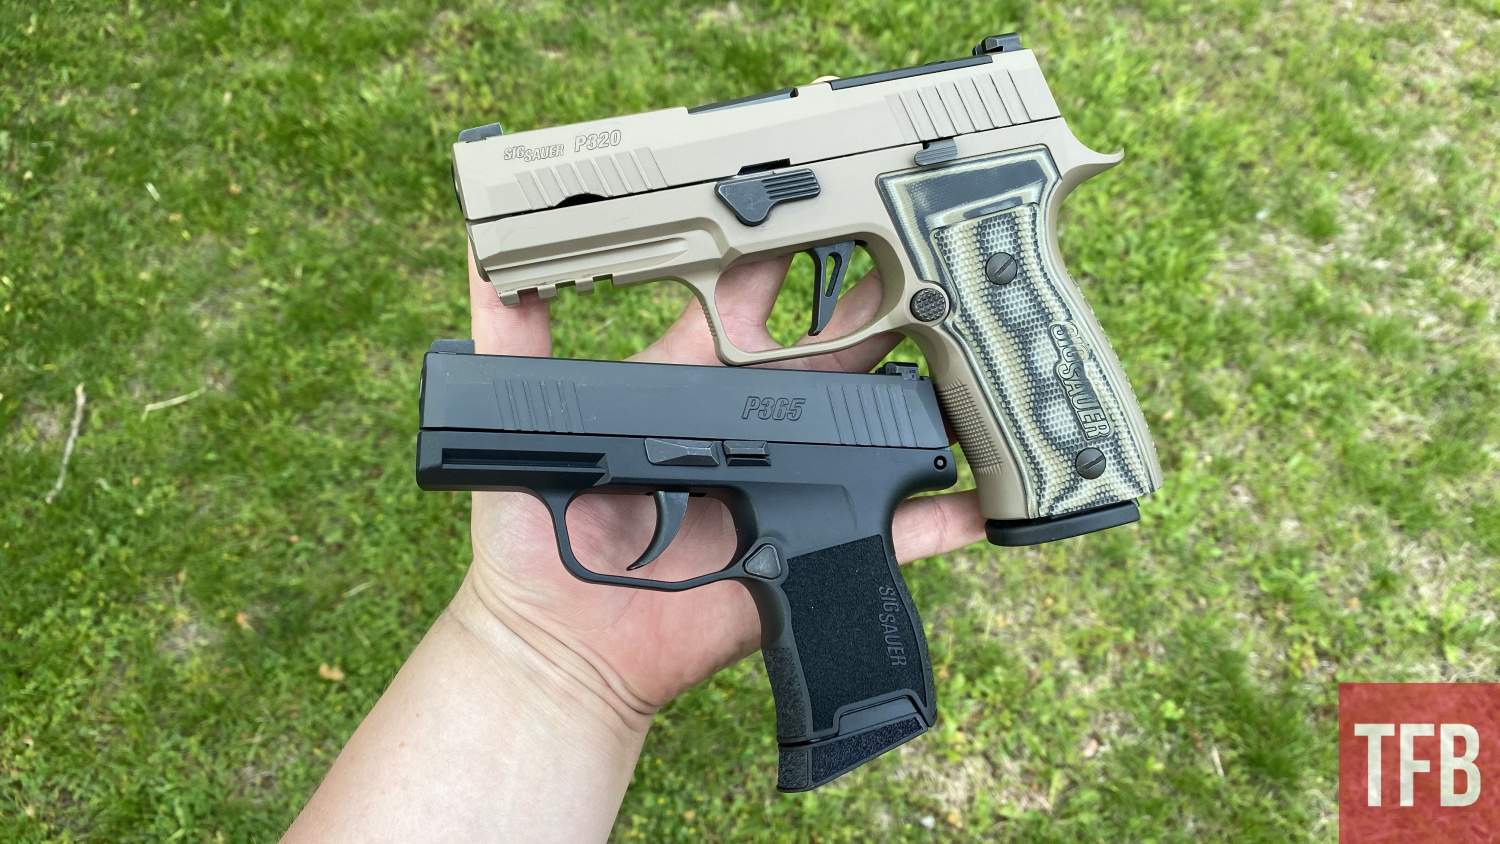 Concealed Carry Corner: Most Common Issues With Concealed Carriers